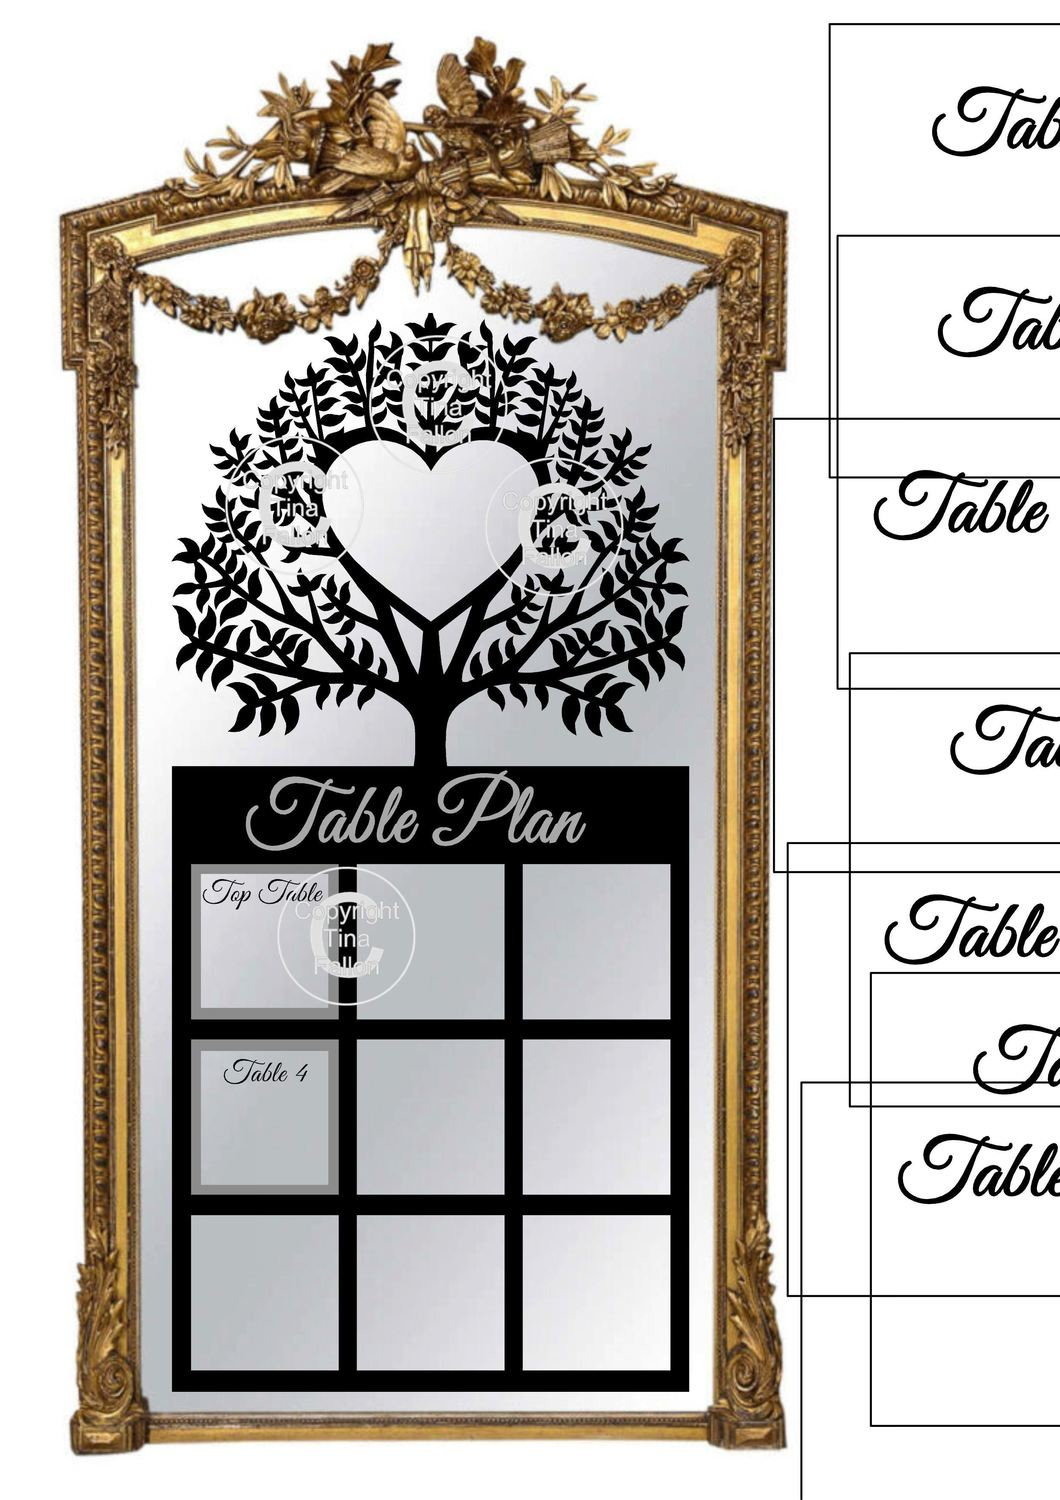 Ex Large Wedding Table Planner for 9 tables - studio fornat